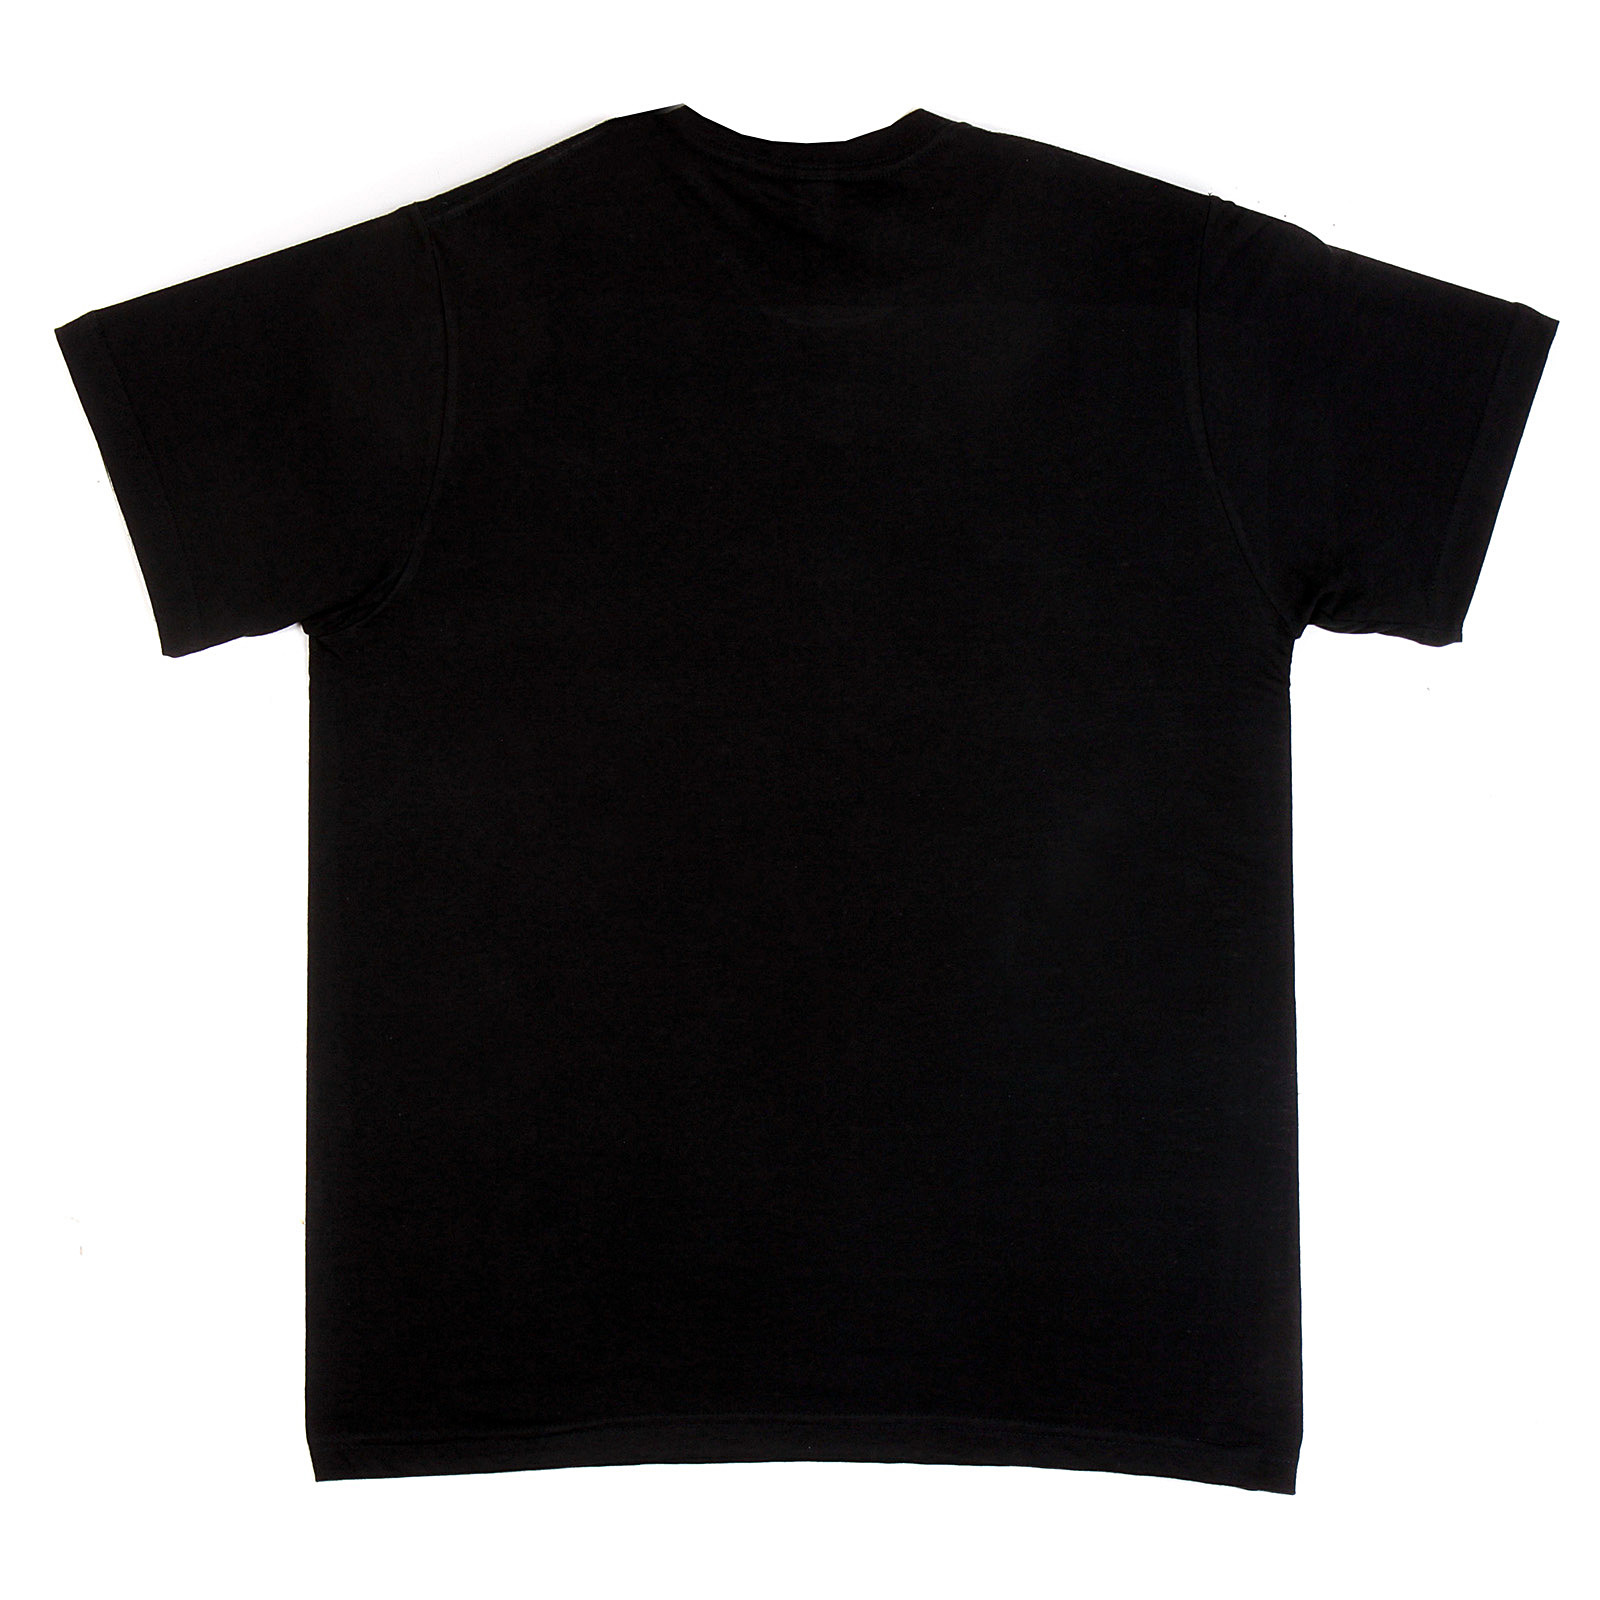 Plain Black Shirt | Is Shirt